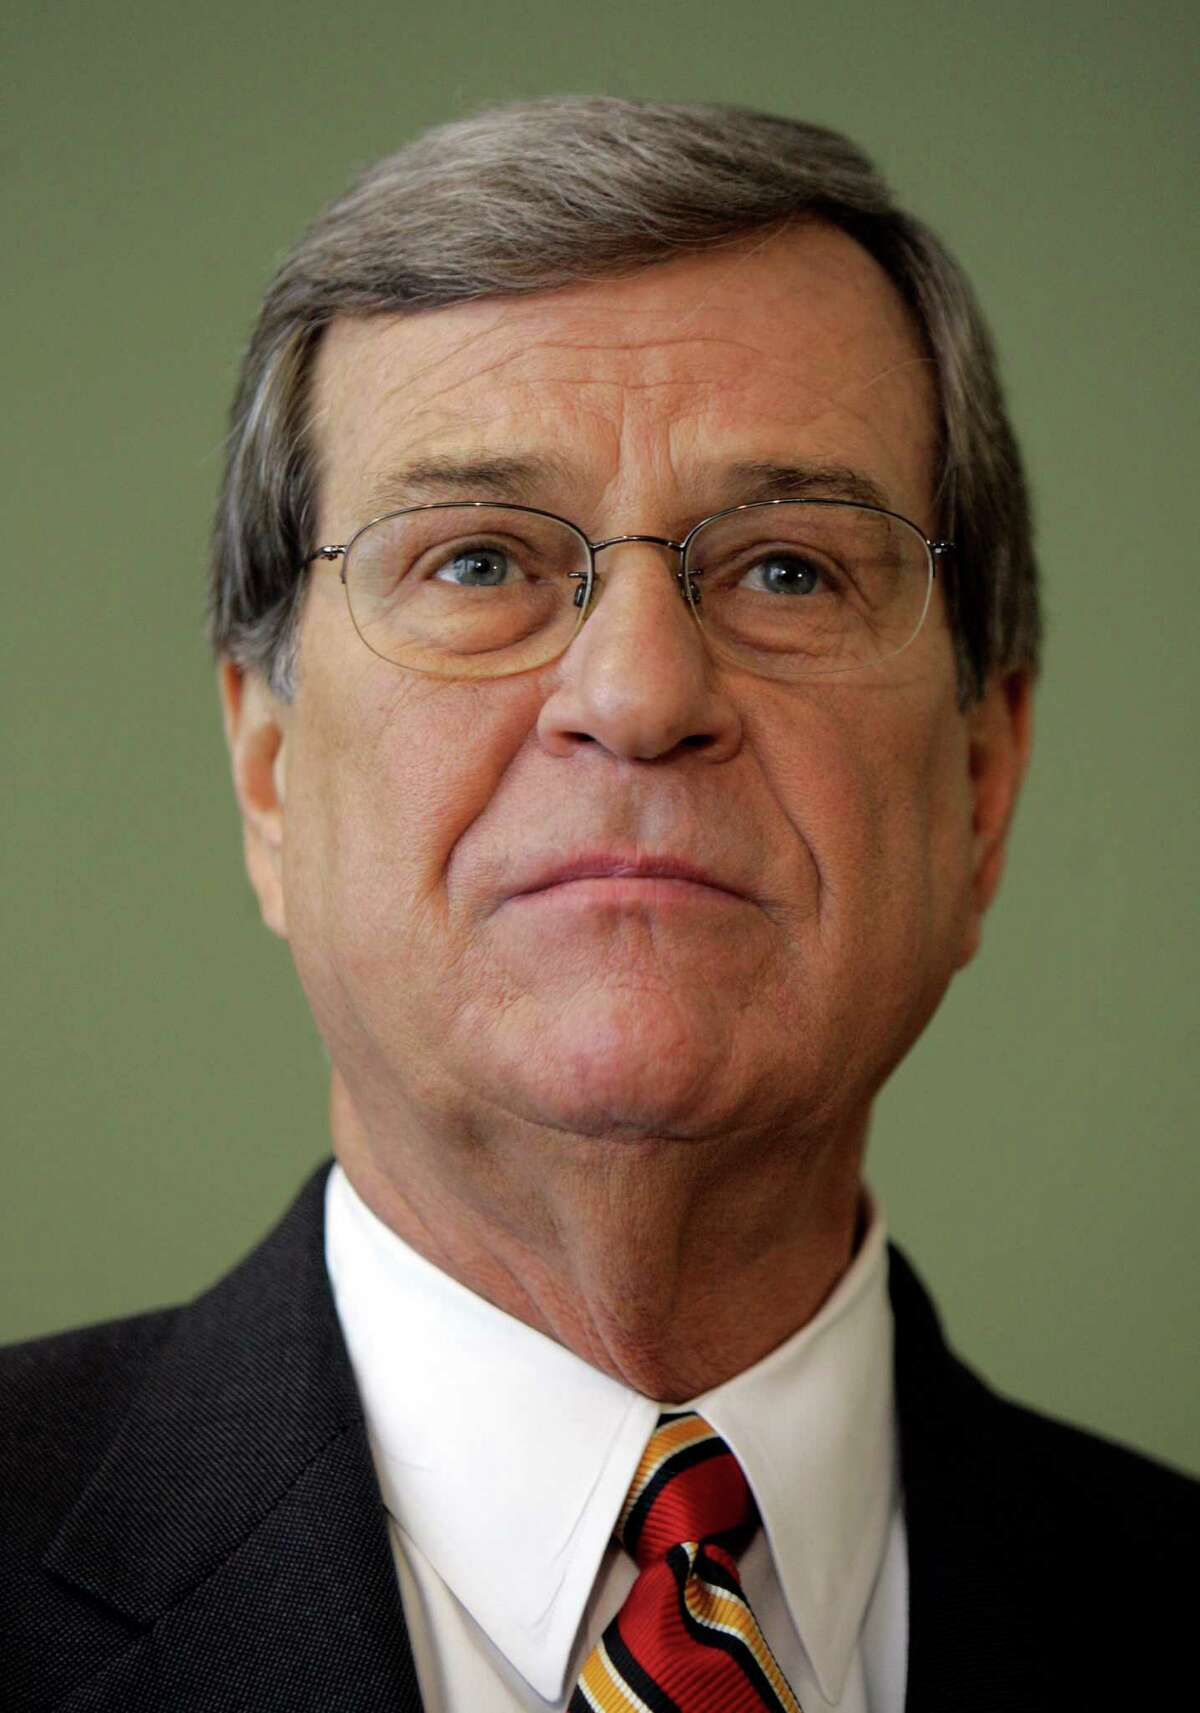 ** FILE ** Then-Sen. Trent Lott, R-Miss. is shown during a news conference in Pascagoula, Miss., in this Nov. 26, 2007 file photo. What the airline industry wants from Washington it often gets, and no wonder: Those who regulate airlines or advise lawmakers on aviation issues one day can be executives in those same companies the next _ and the other way around. (AP Photo/Alex Brandon, File)